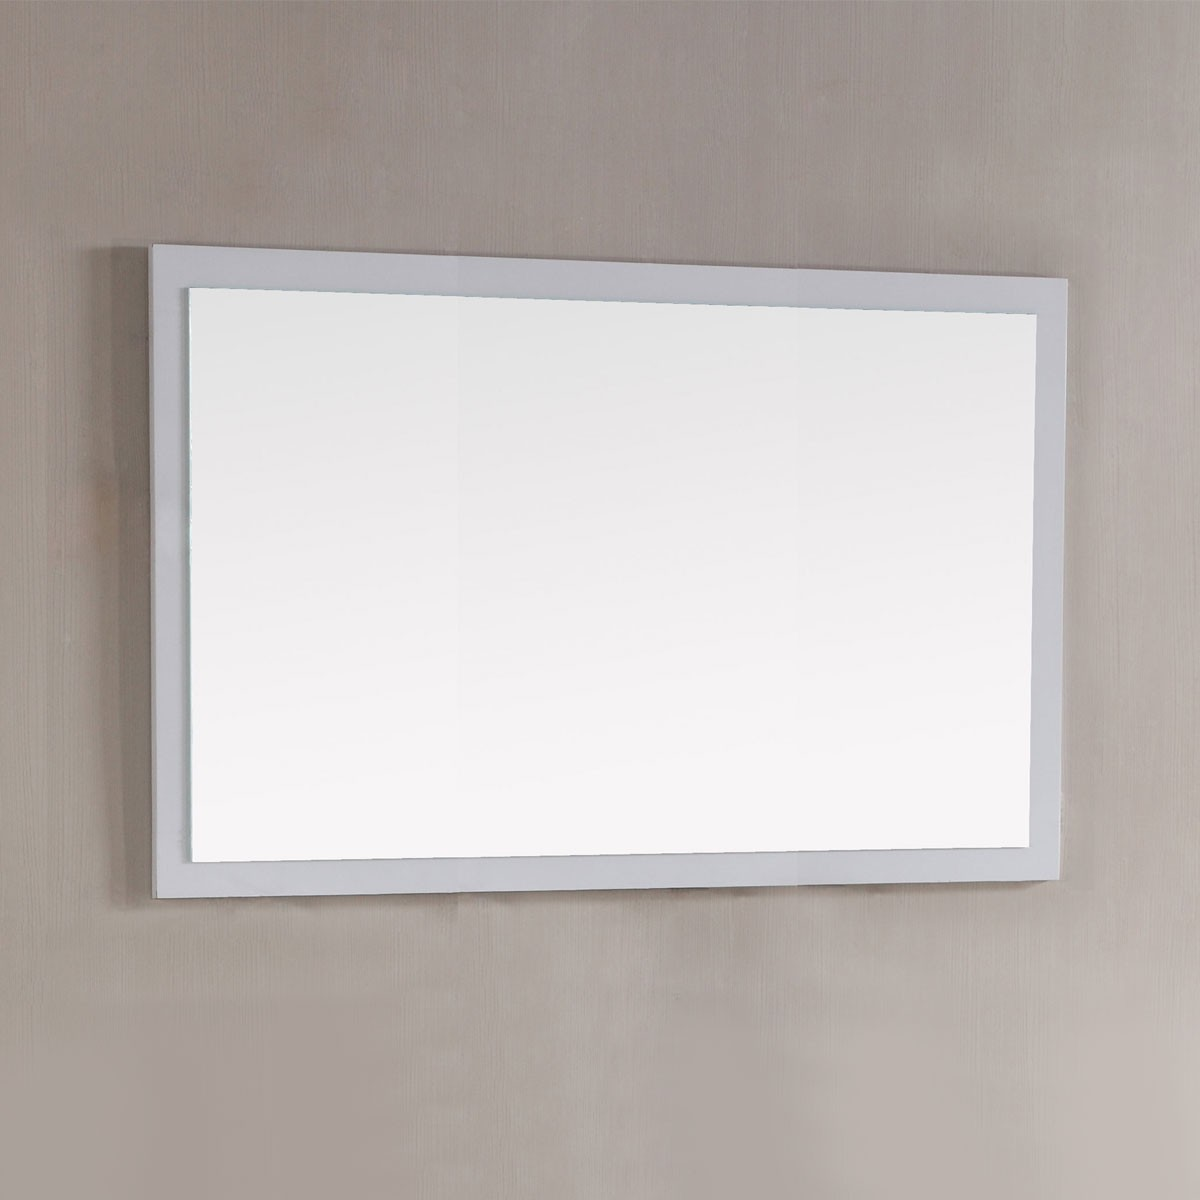 48 x 31 In. Mirror with White Frame (DK-T9312-48WM)